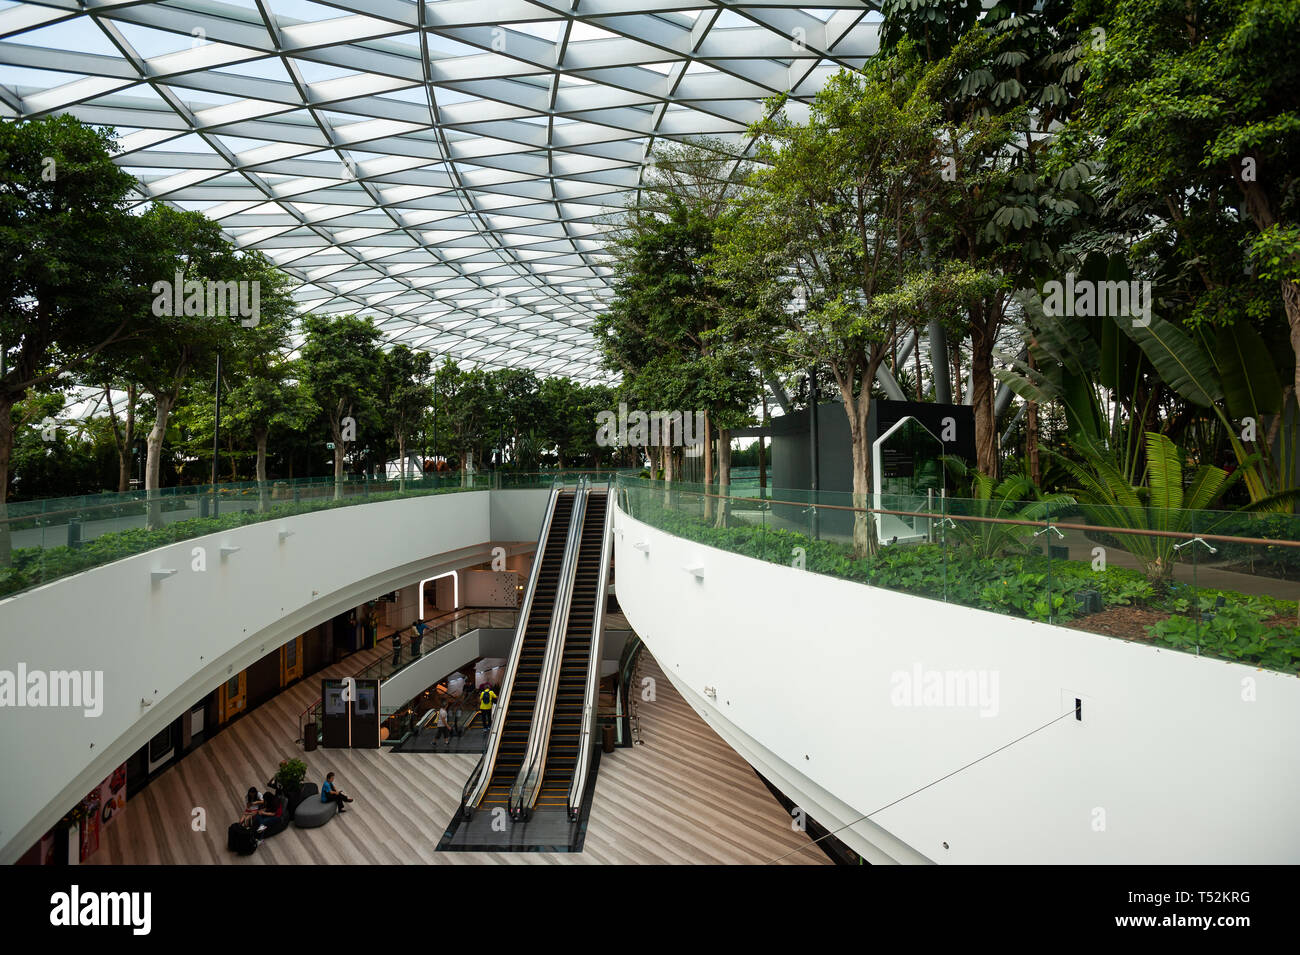 18.04.2019, Singapore, Republic of Singapore, Asia - View of the new Jewel Terminal at Changi Airport, designed by Moshe Safdie Architects. - Stock Image